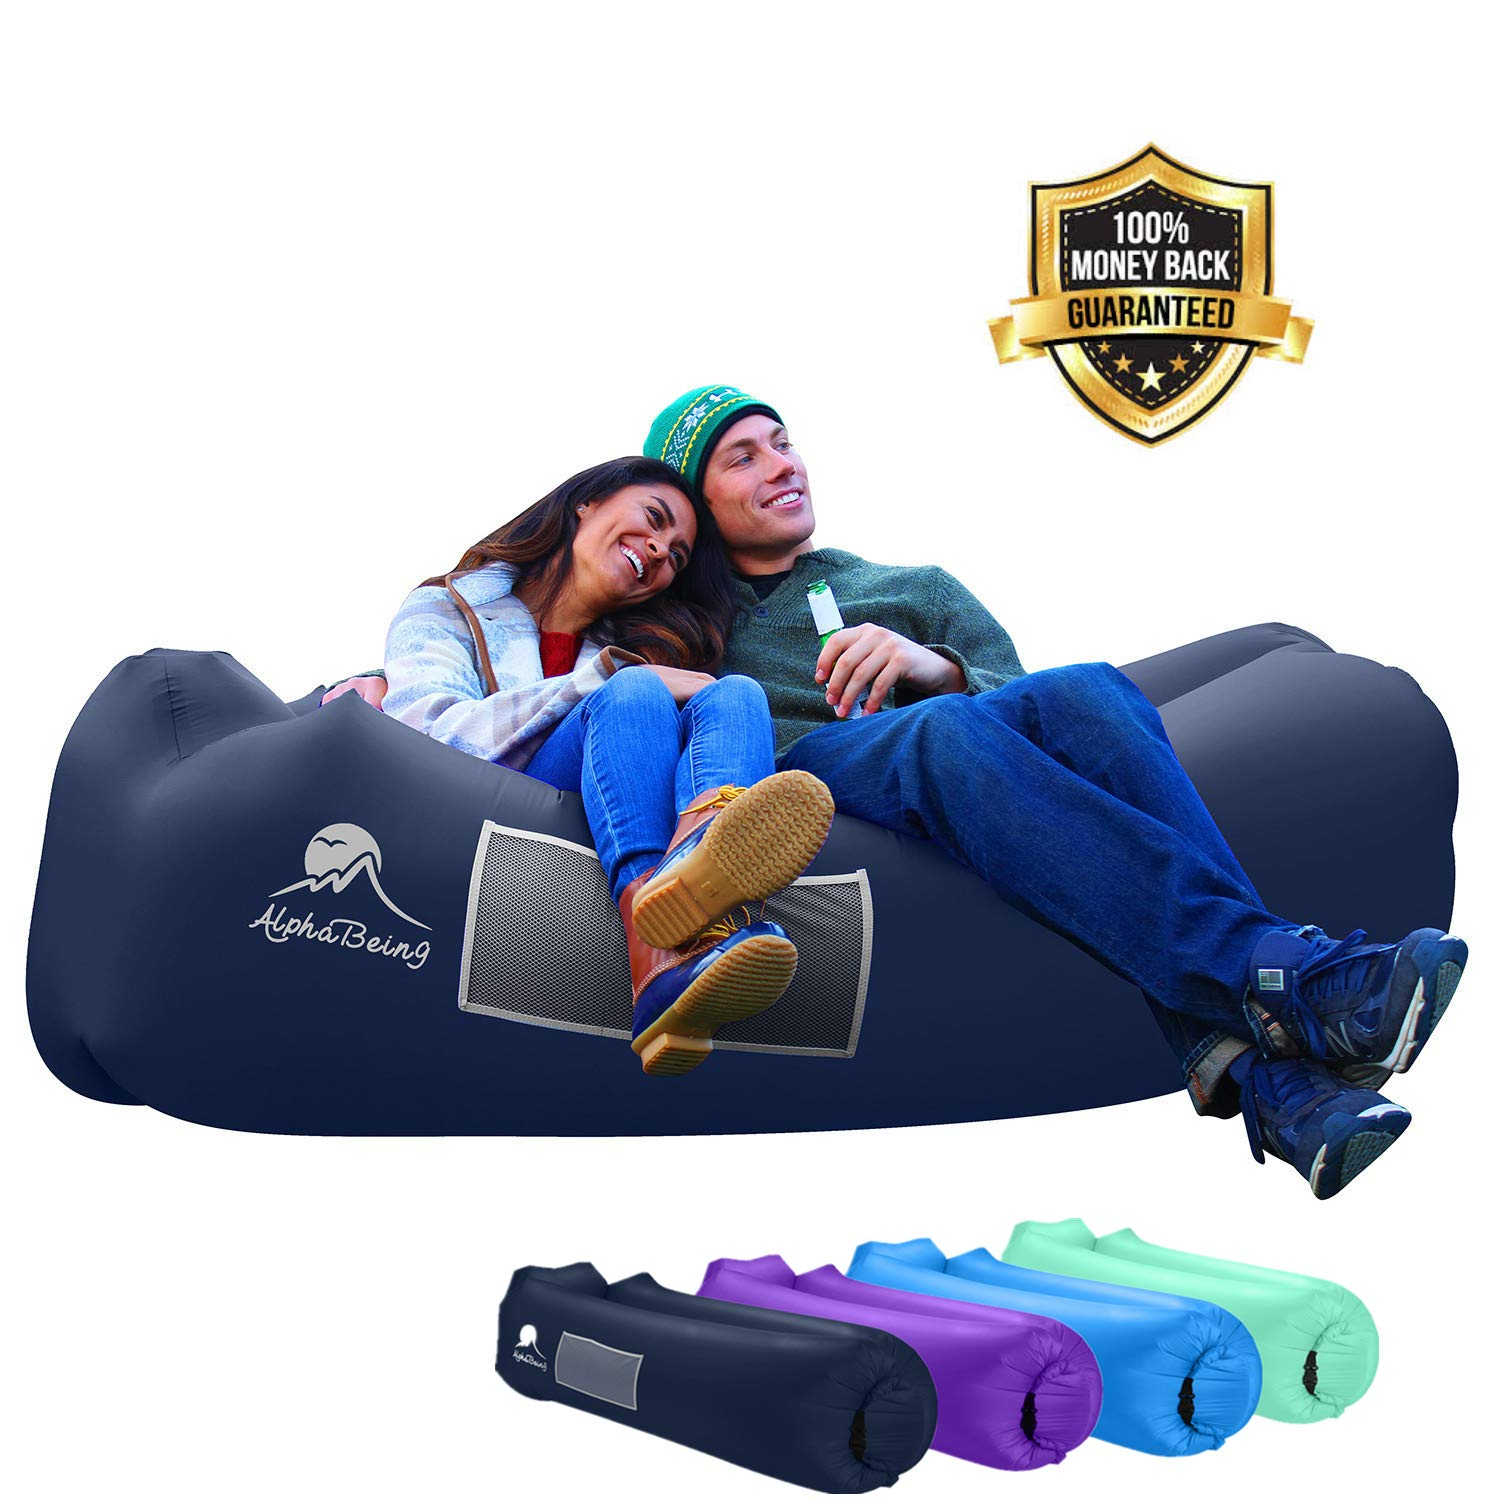 AlphaBeing Inflatable Lounger Helinox Chair Zero